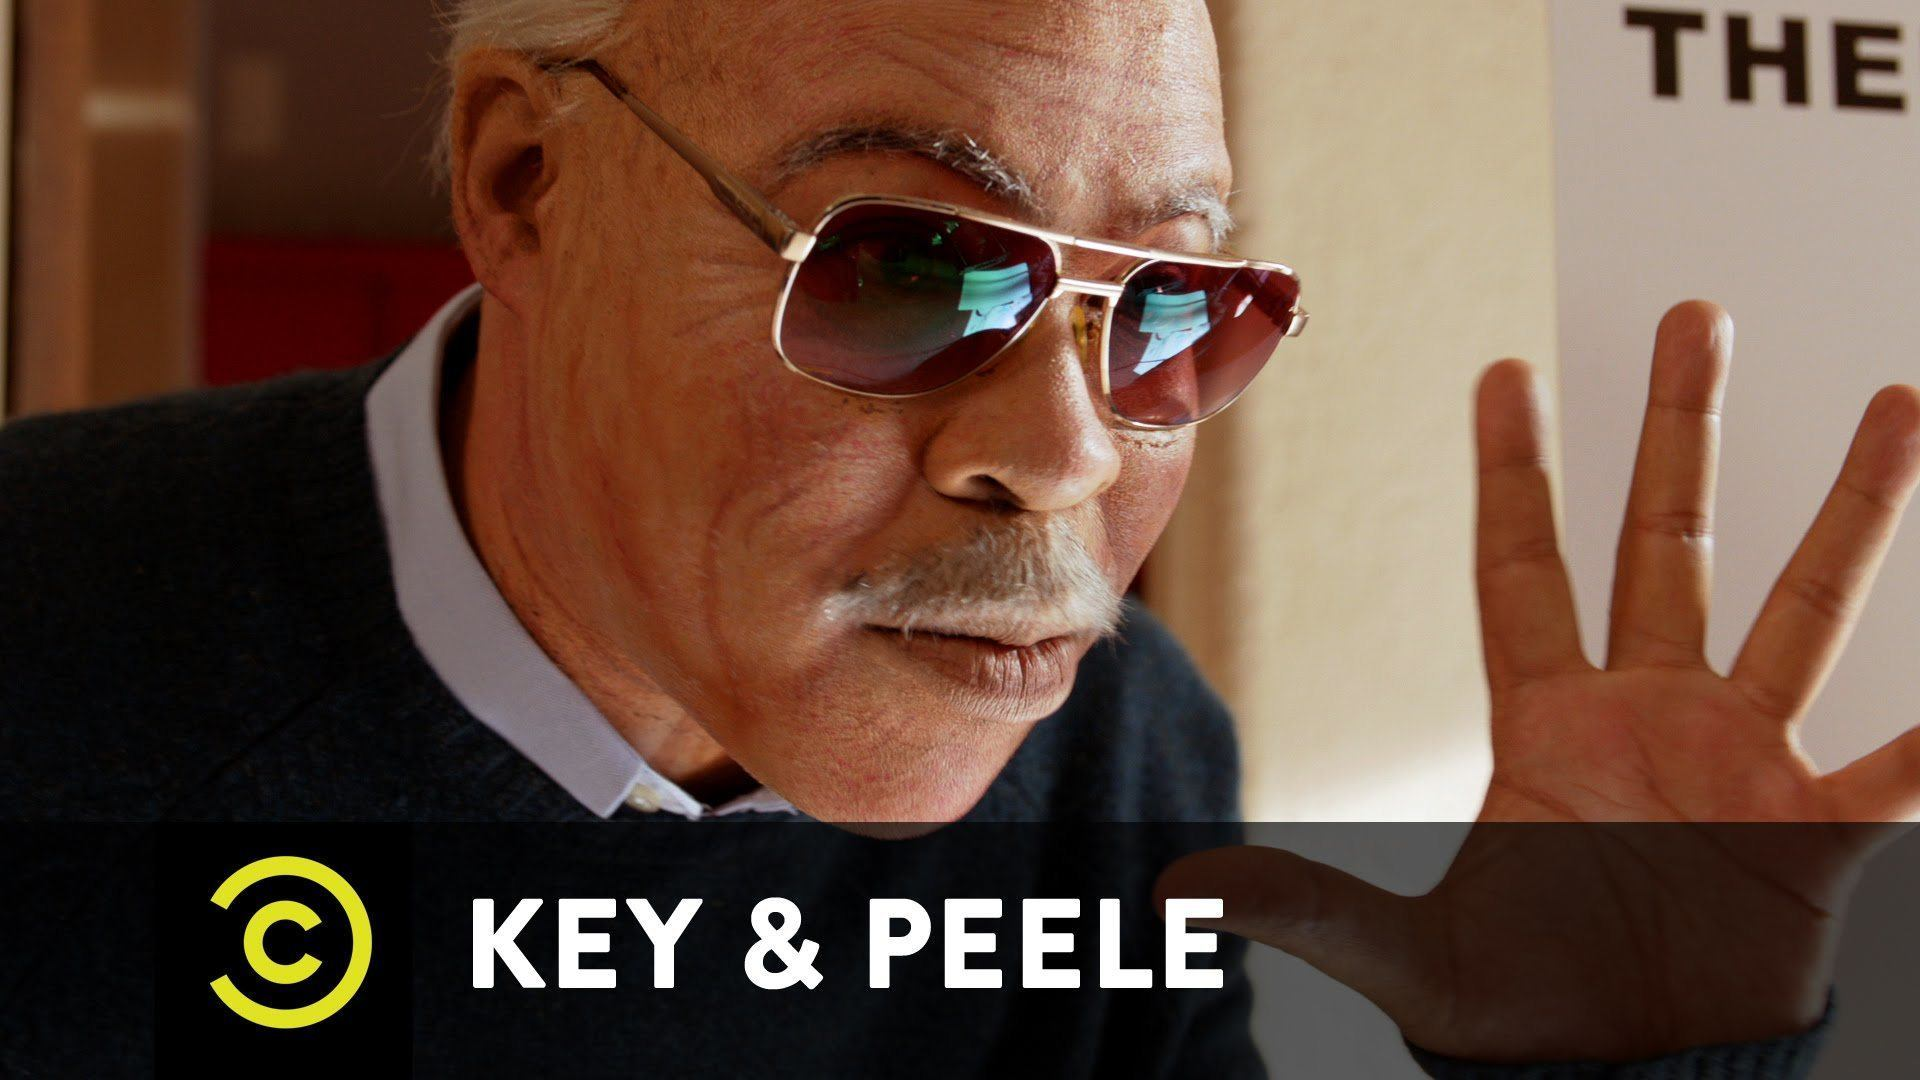 Watch Key & Peele Rip Stan Lee To Shreds With Their New Comedy Sketch